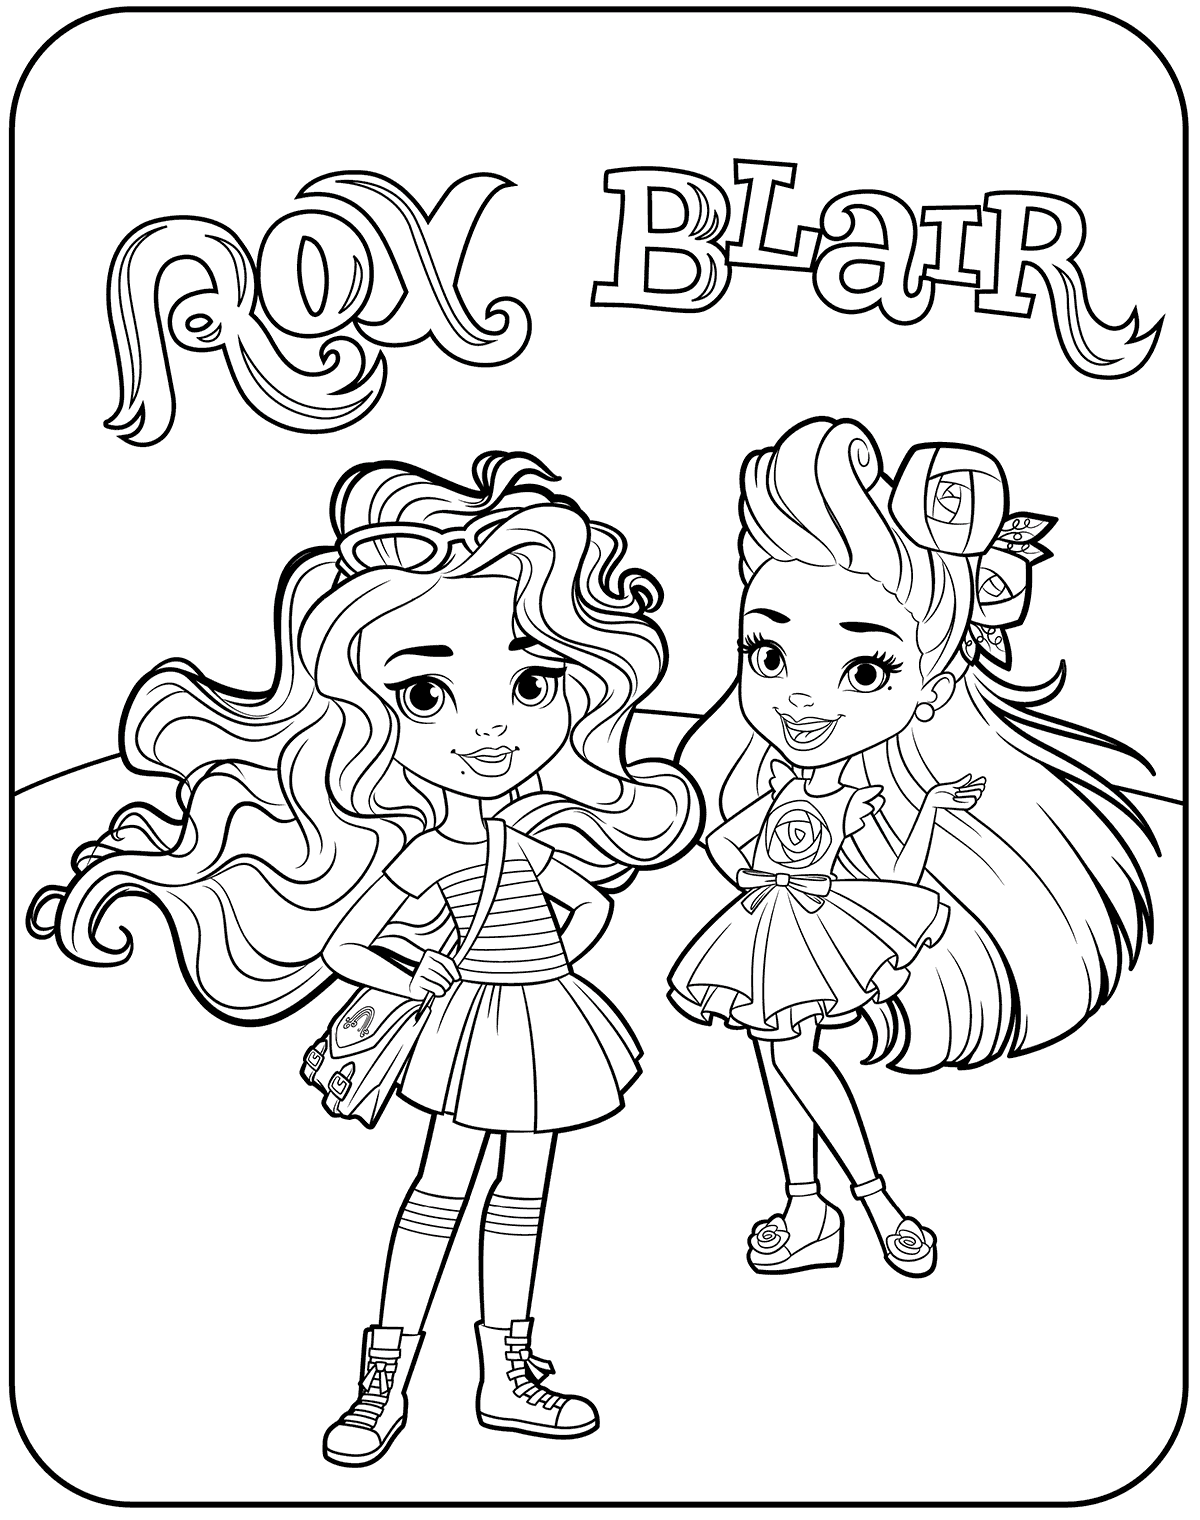 sunny day coloring book sunny day coloring pages coloring home book coloring sunny day